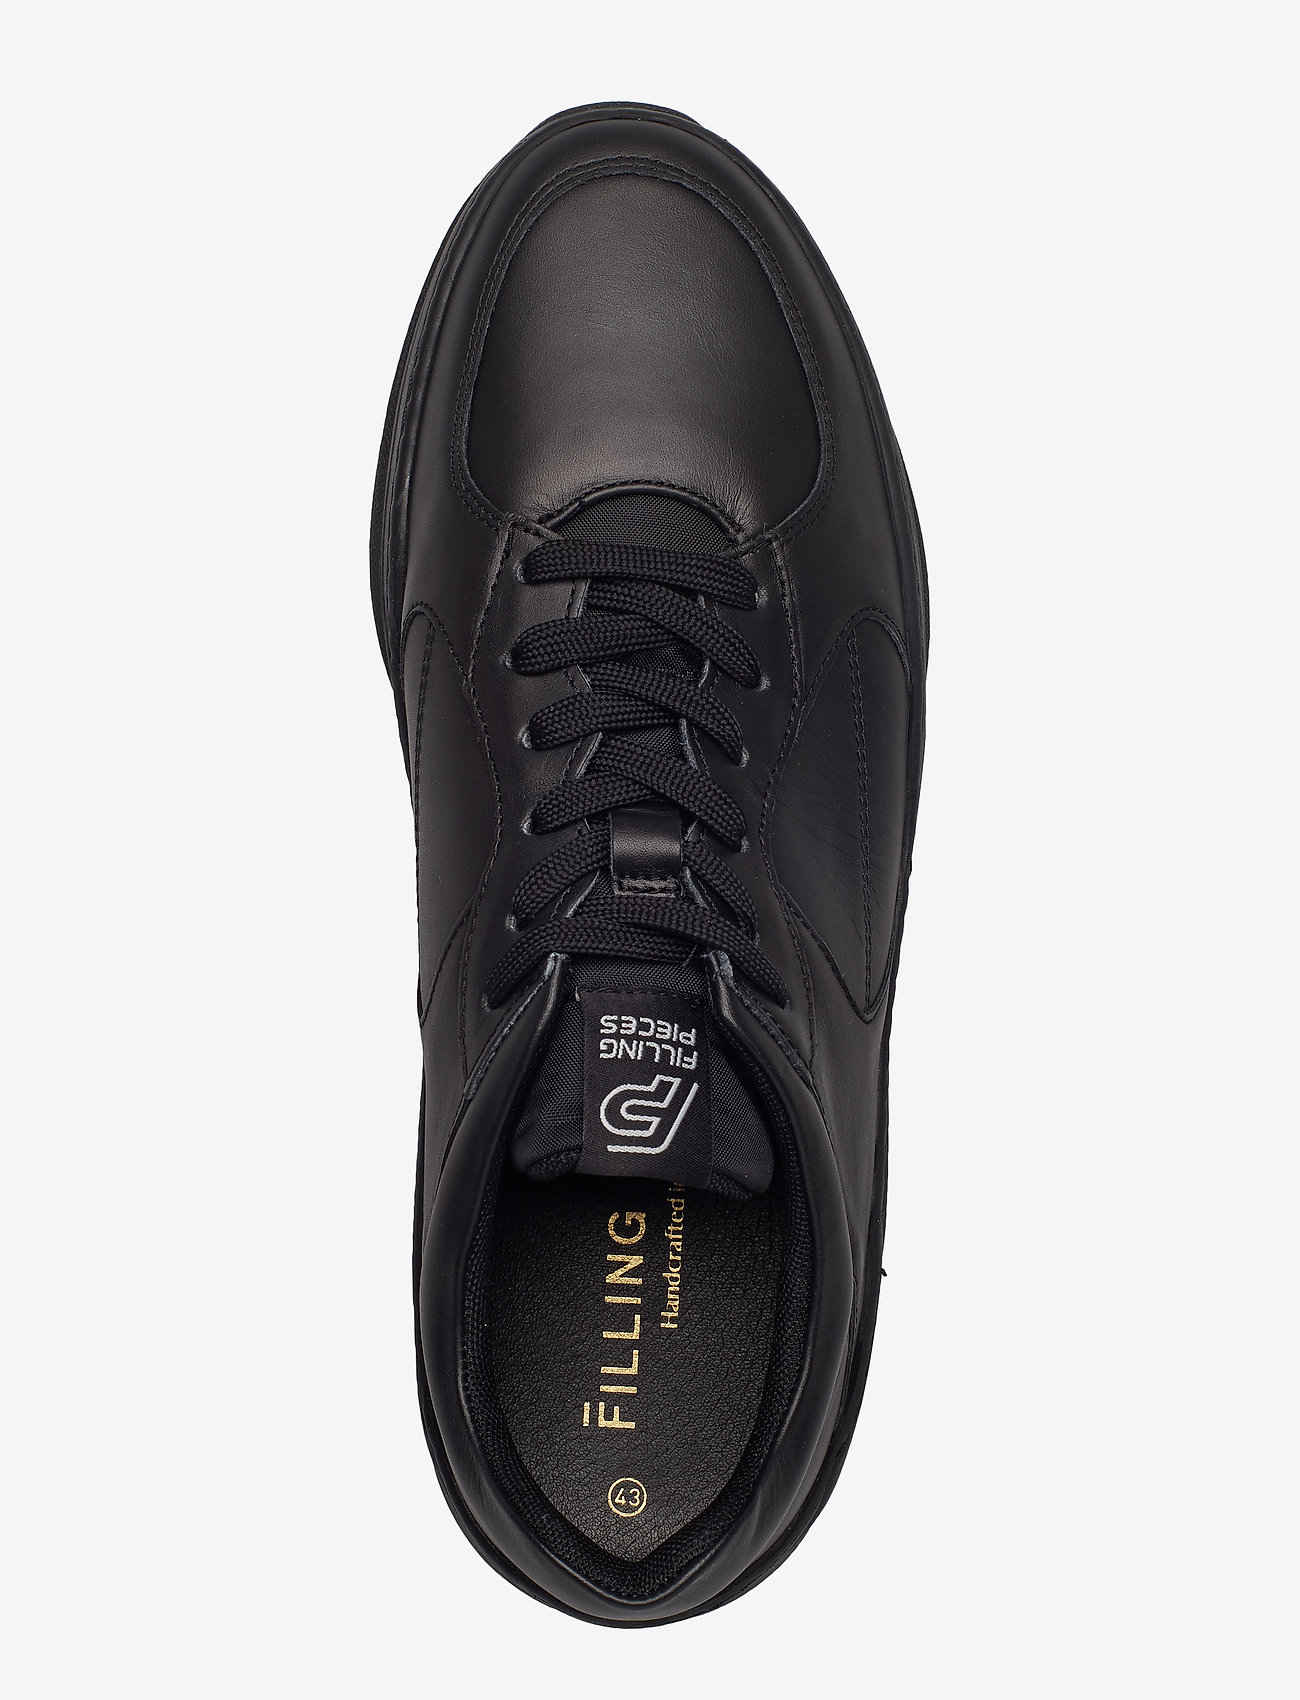 Low Cage Cosmo Linus (All Black) - Filling Pieces